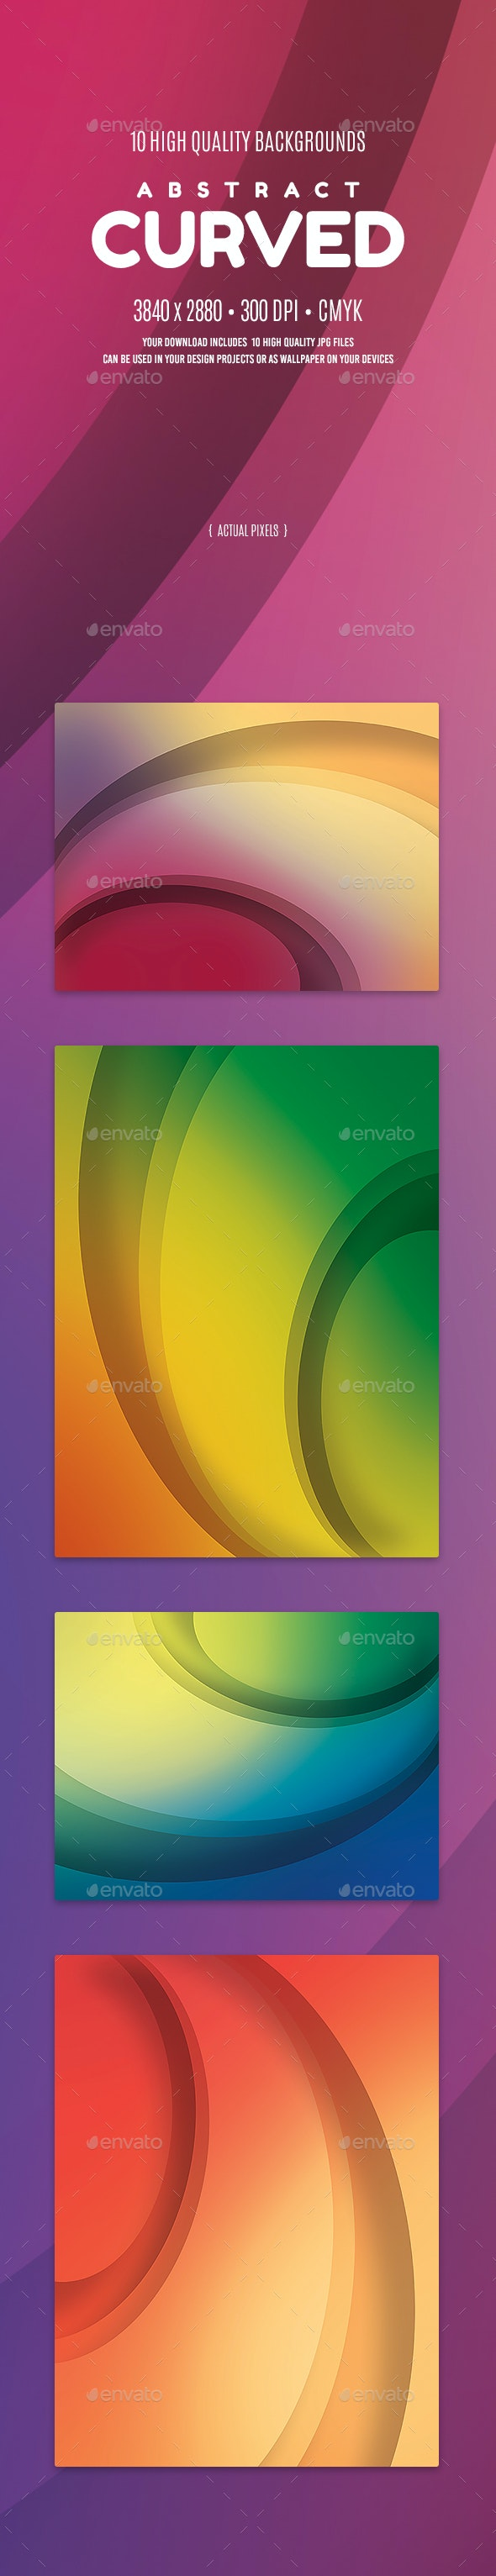 Abstract Curved Backgrounds - Abstract Backgrounds